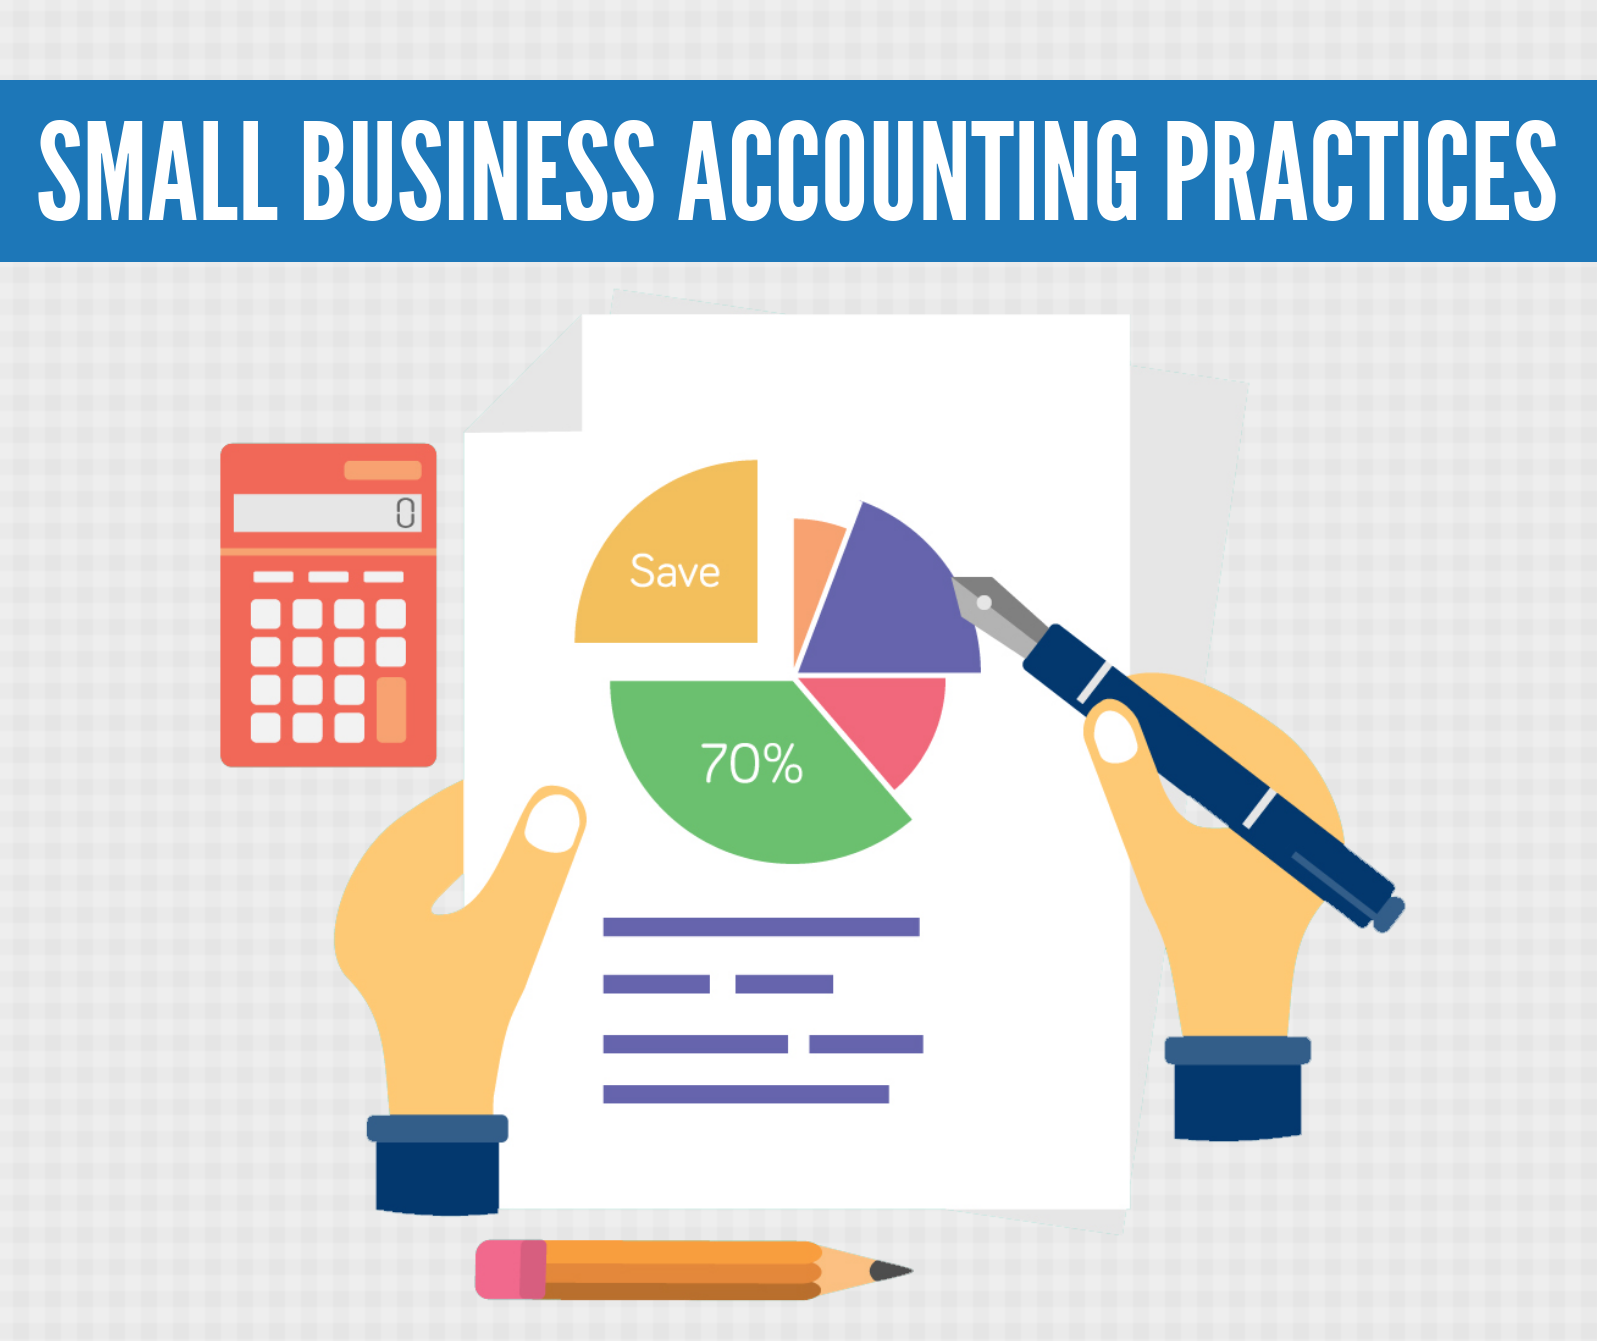 Basic Accounting Practices for Small Business